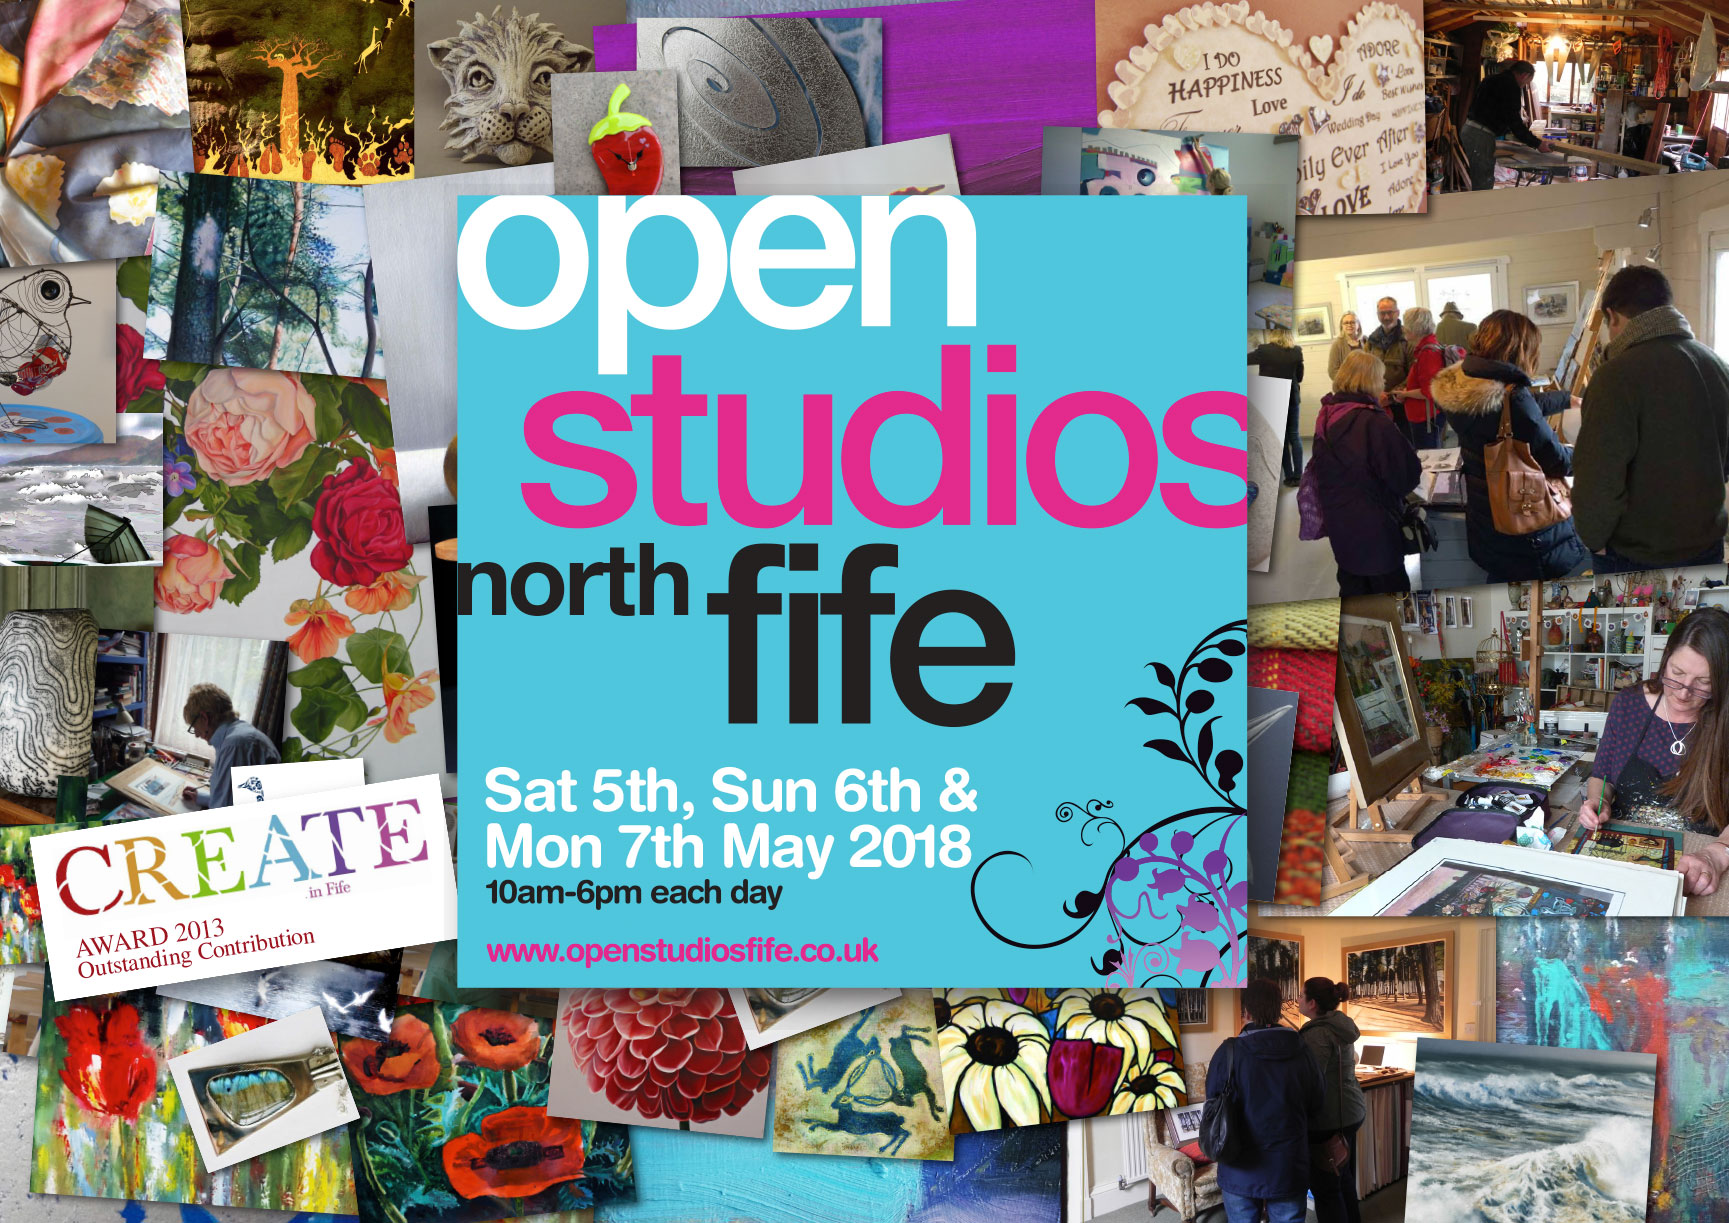 Open Studios North Fife 2018 Logo surrounded by artists and their work